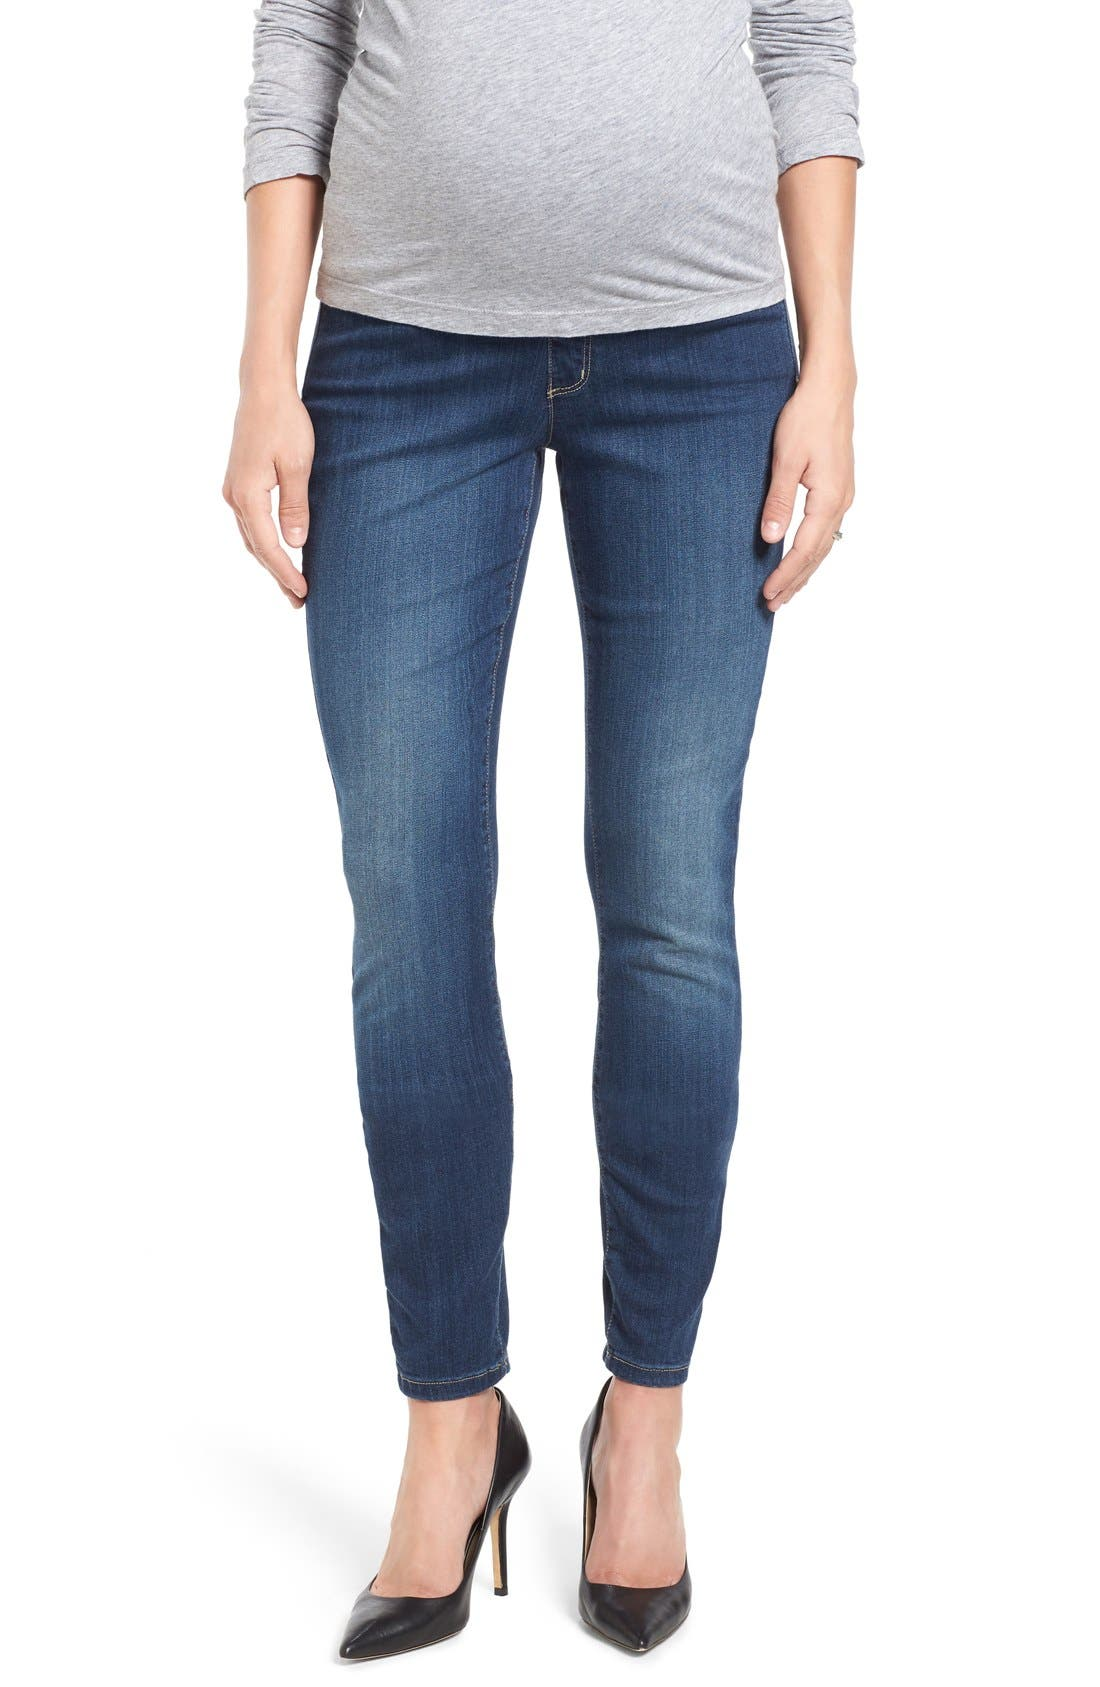 NYDJ 'Ami' Stretch Skinny Maternity Jeans (Big Sur) (Online Only)